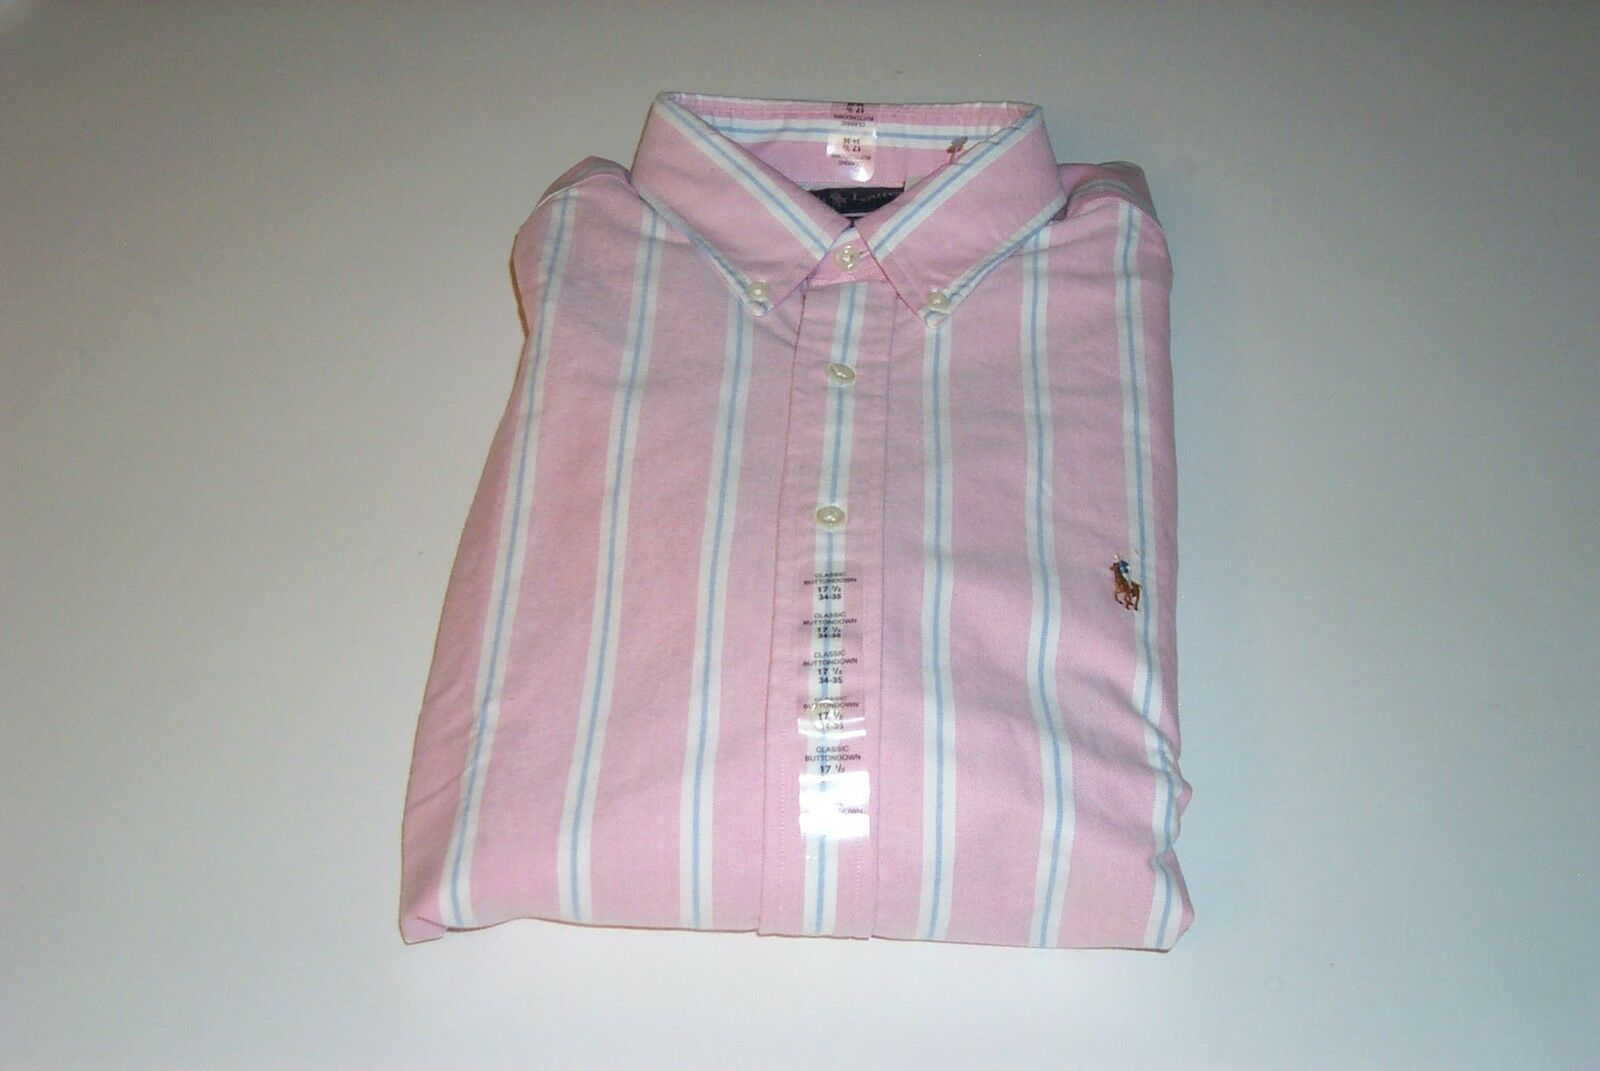 bf9635057e84 NWT POLO RALPH LAUREN MENS LS PINK STRIPED FRONT BUTTON SHIRT 17 1 2 34 35